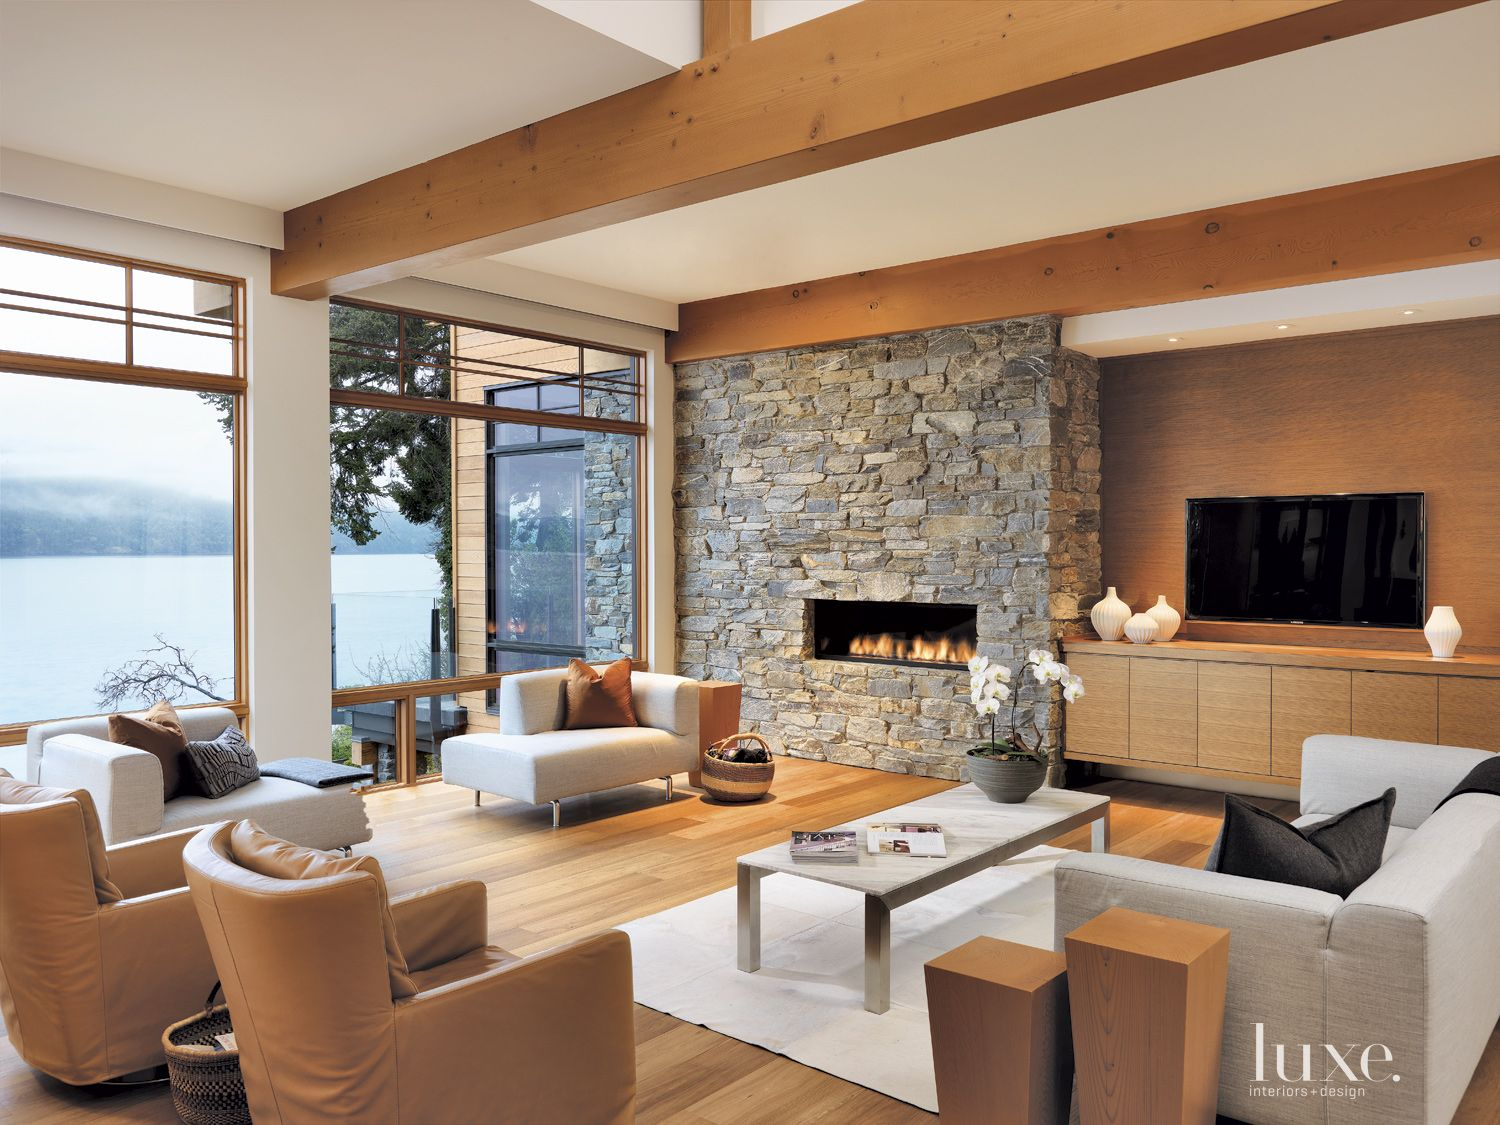 Contemporary White Living Room with Rustic Fireplace